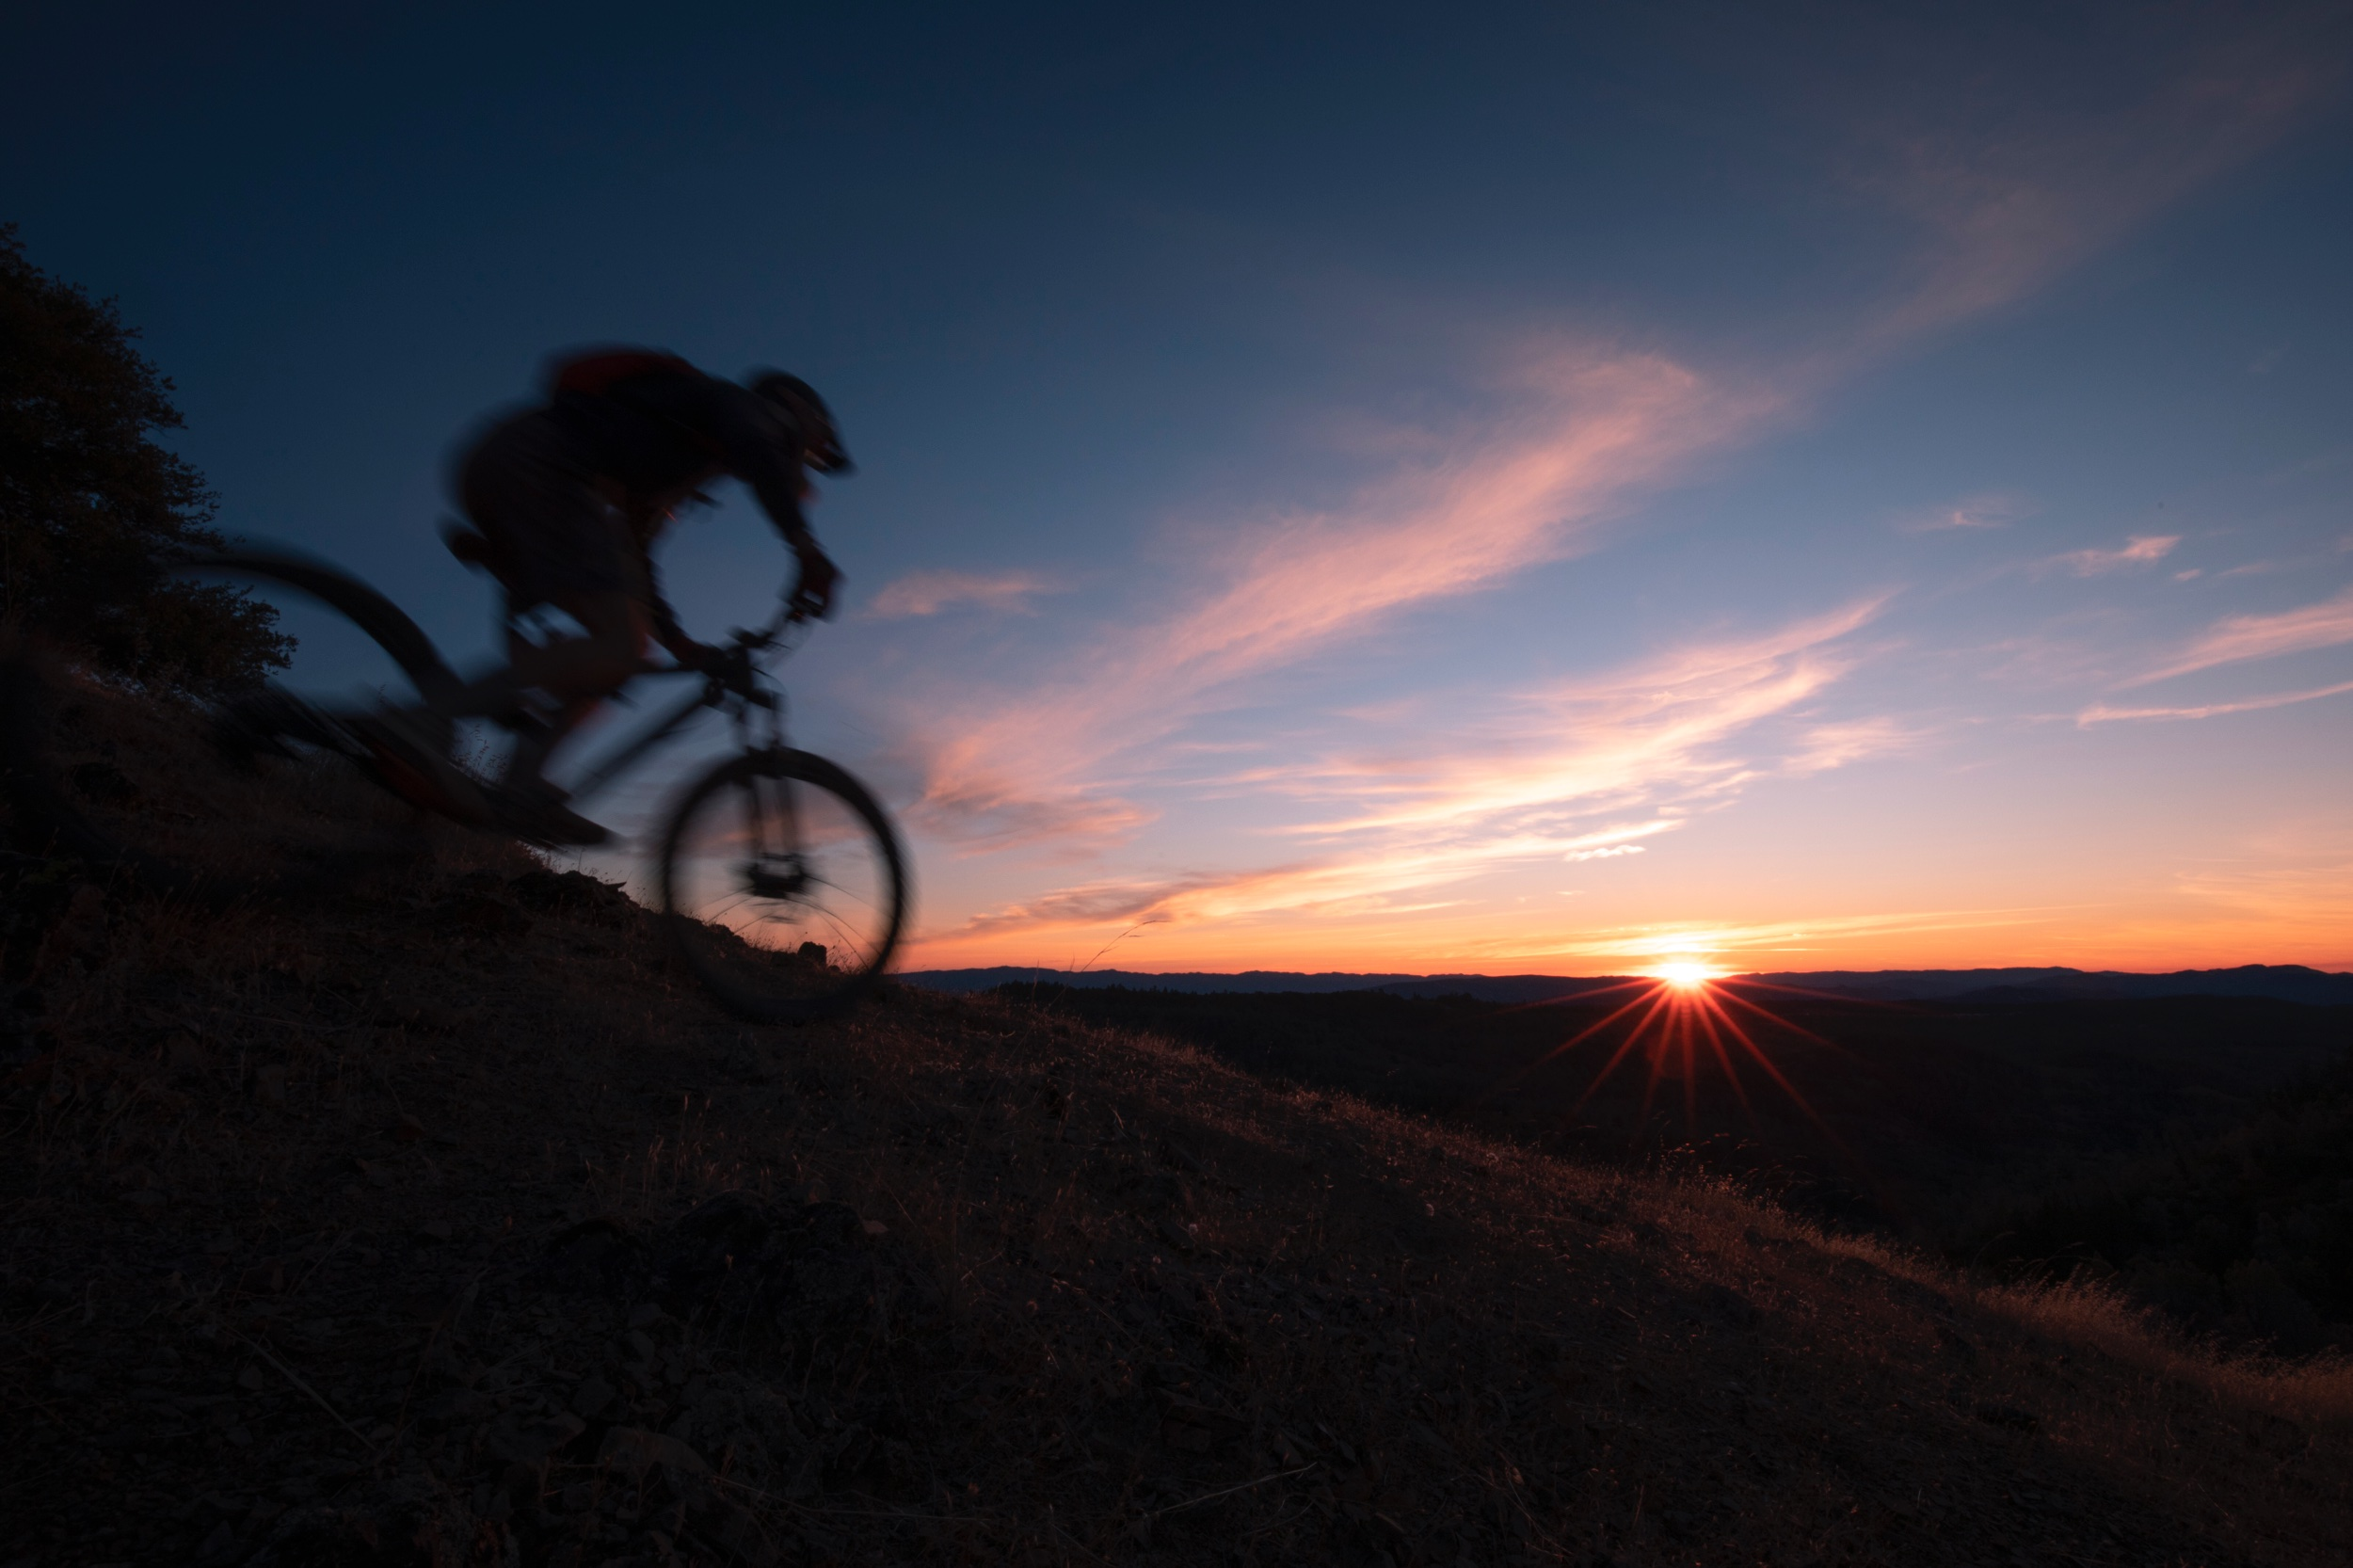 Mountain biking in the Palisades near Angwin